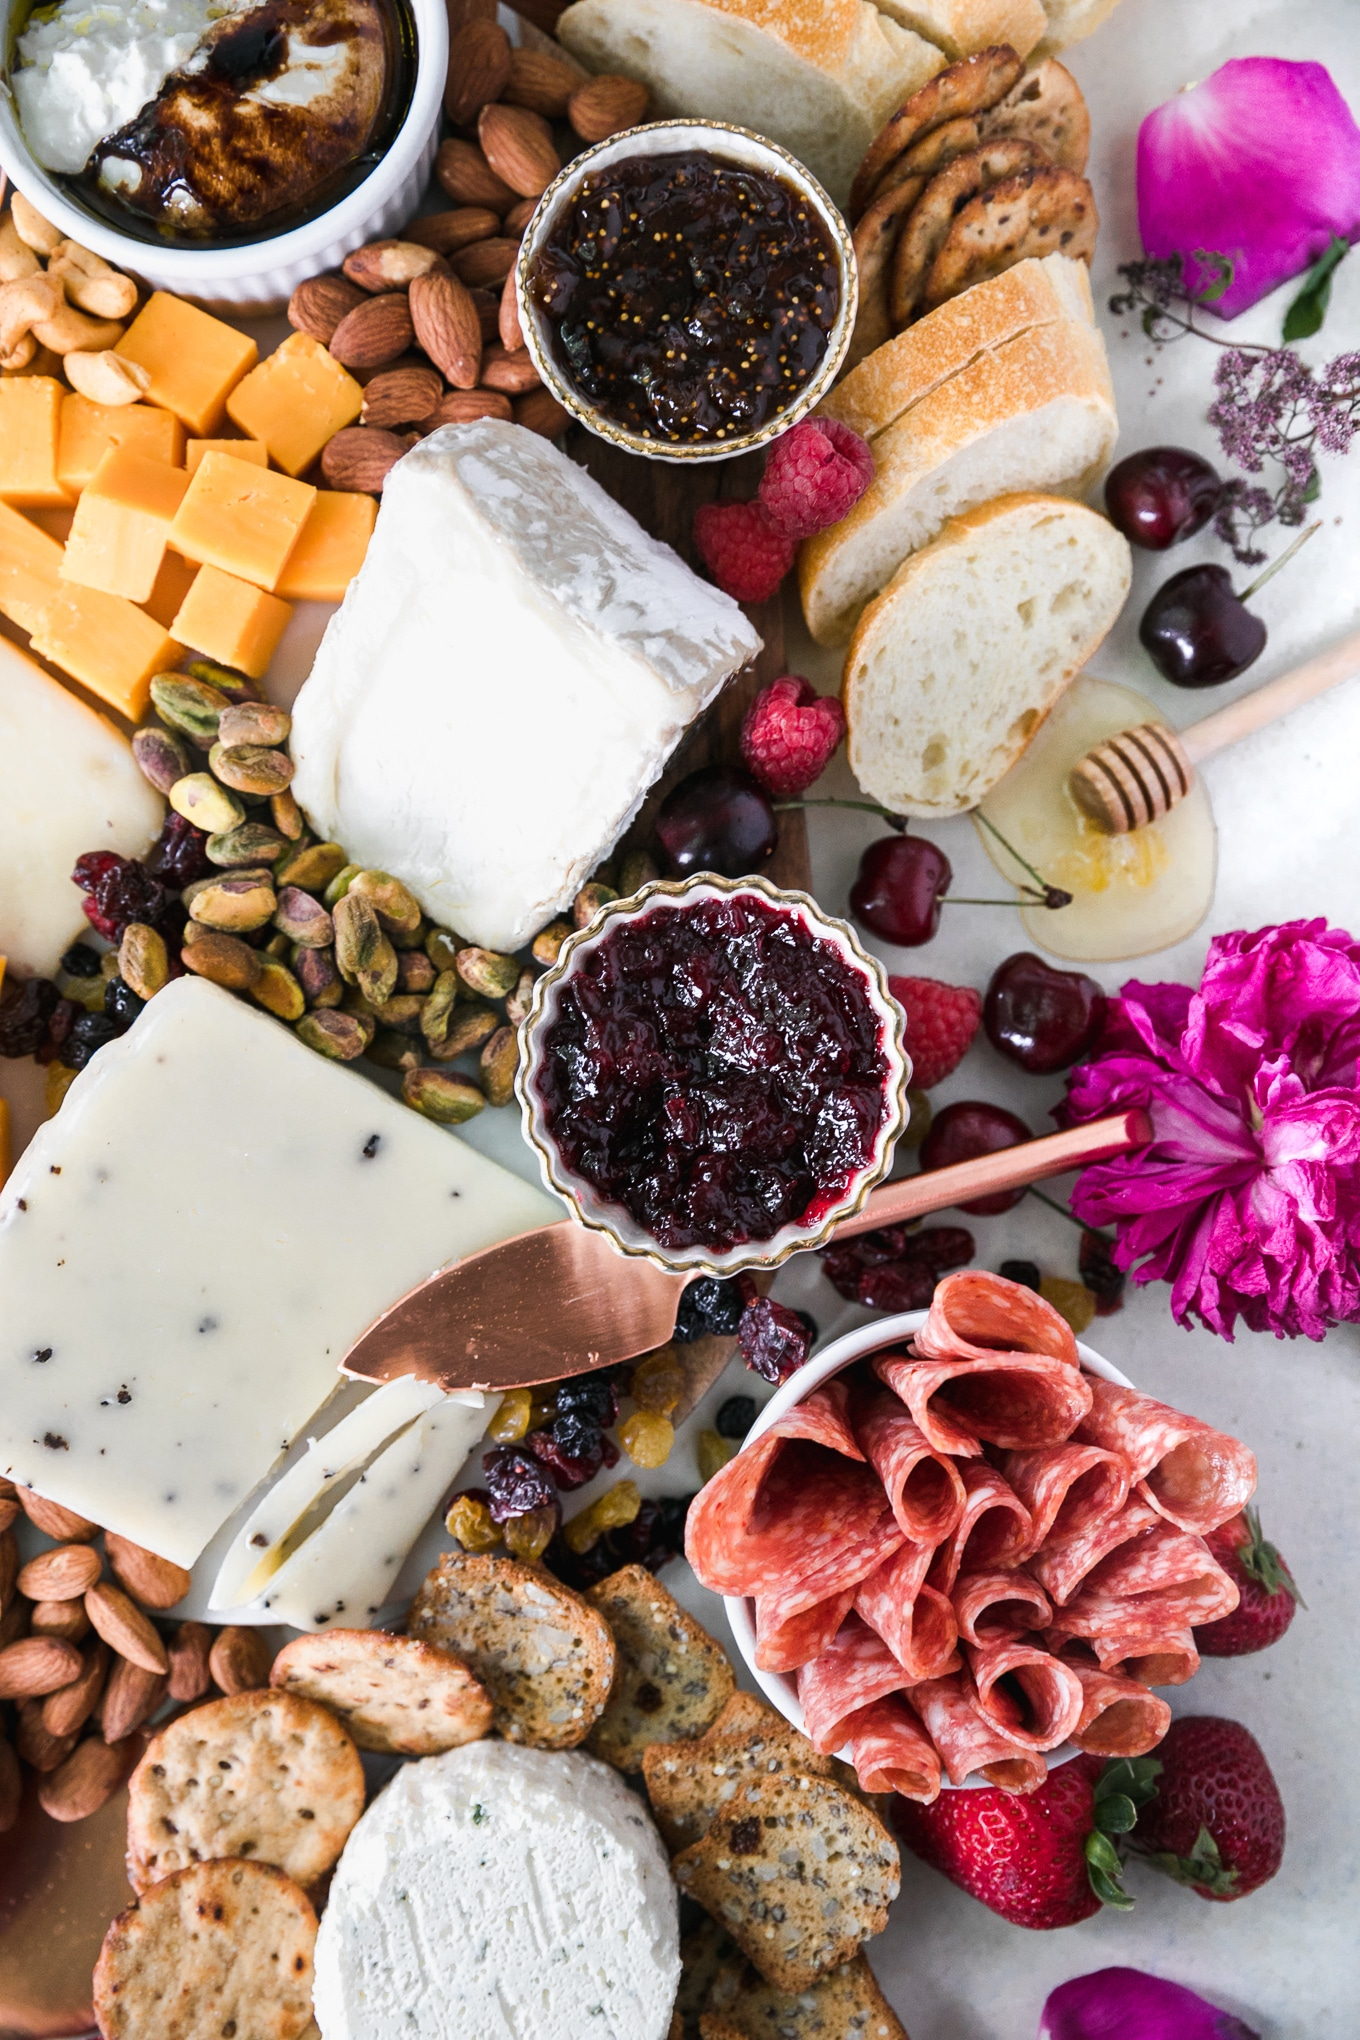 Overhead shot of a cheeseboard with various cheese, nuts, honey, preserves, honey, salami, crackers, bread, and fresh berries and a pink peony flower off to the side